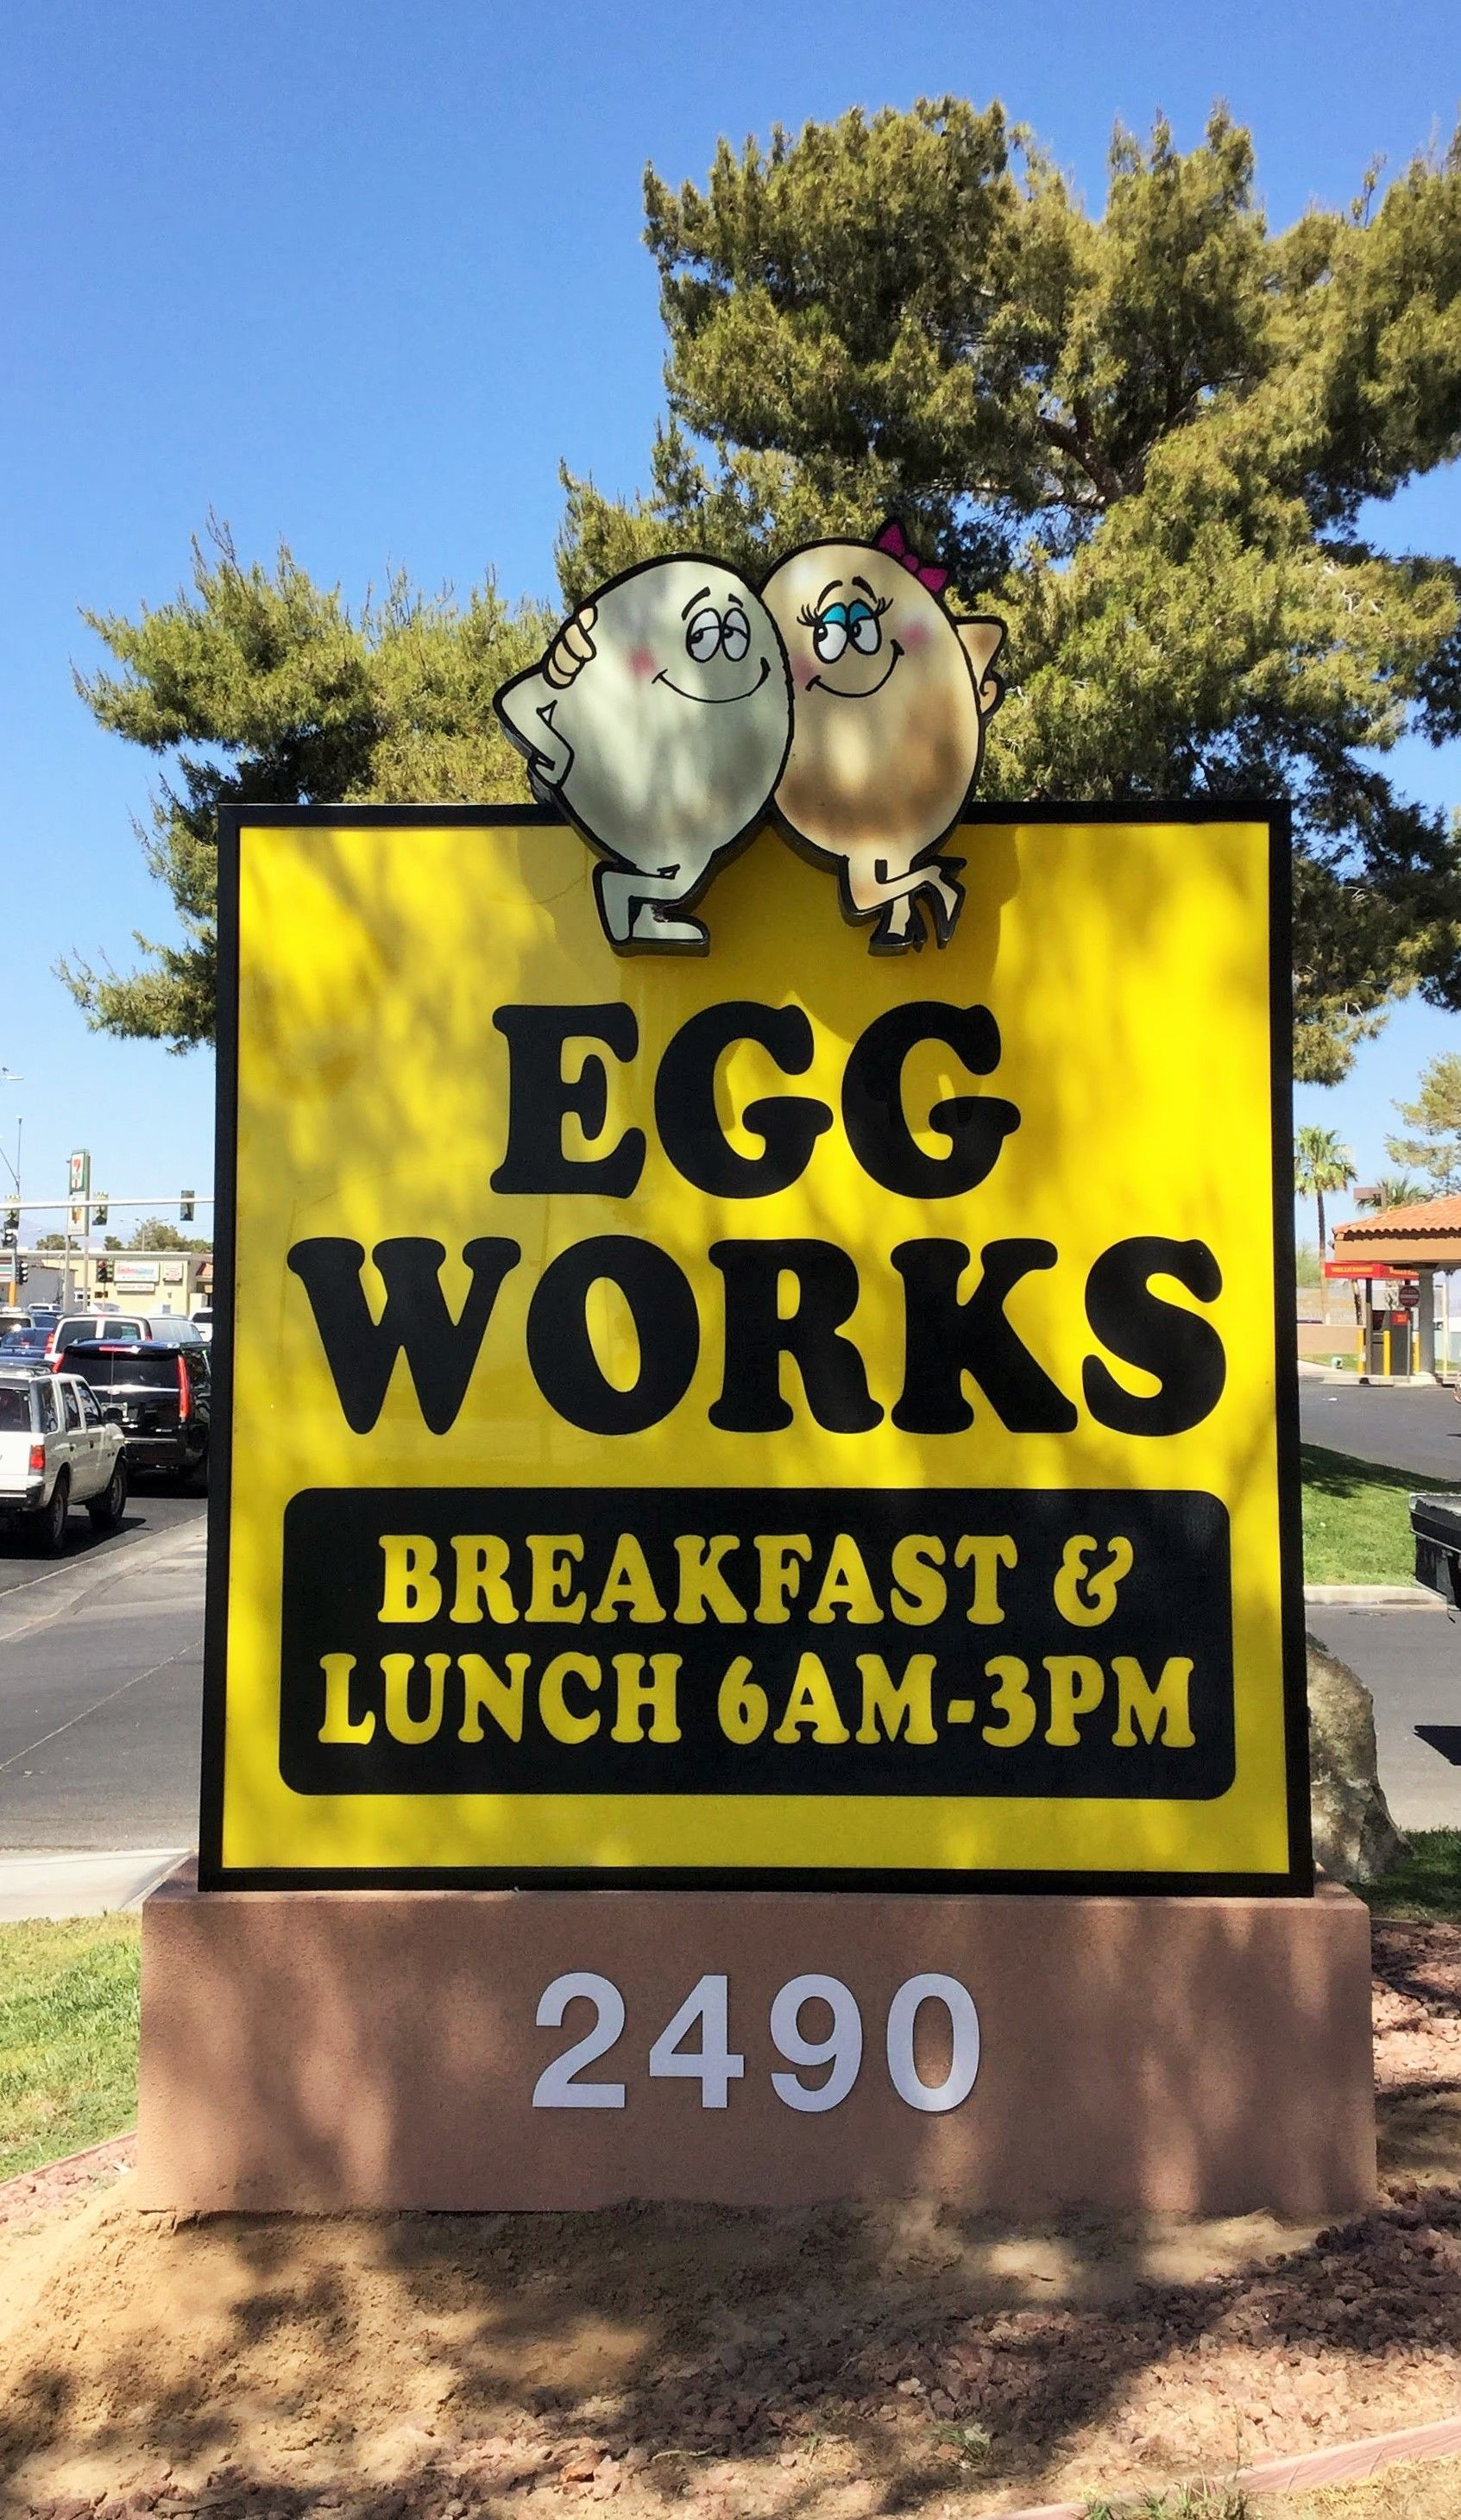 Exterior & Outdoor Signage | Monument Signs | Restaurant and Food Service Signs | Las Vegas